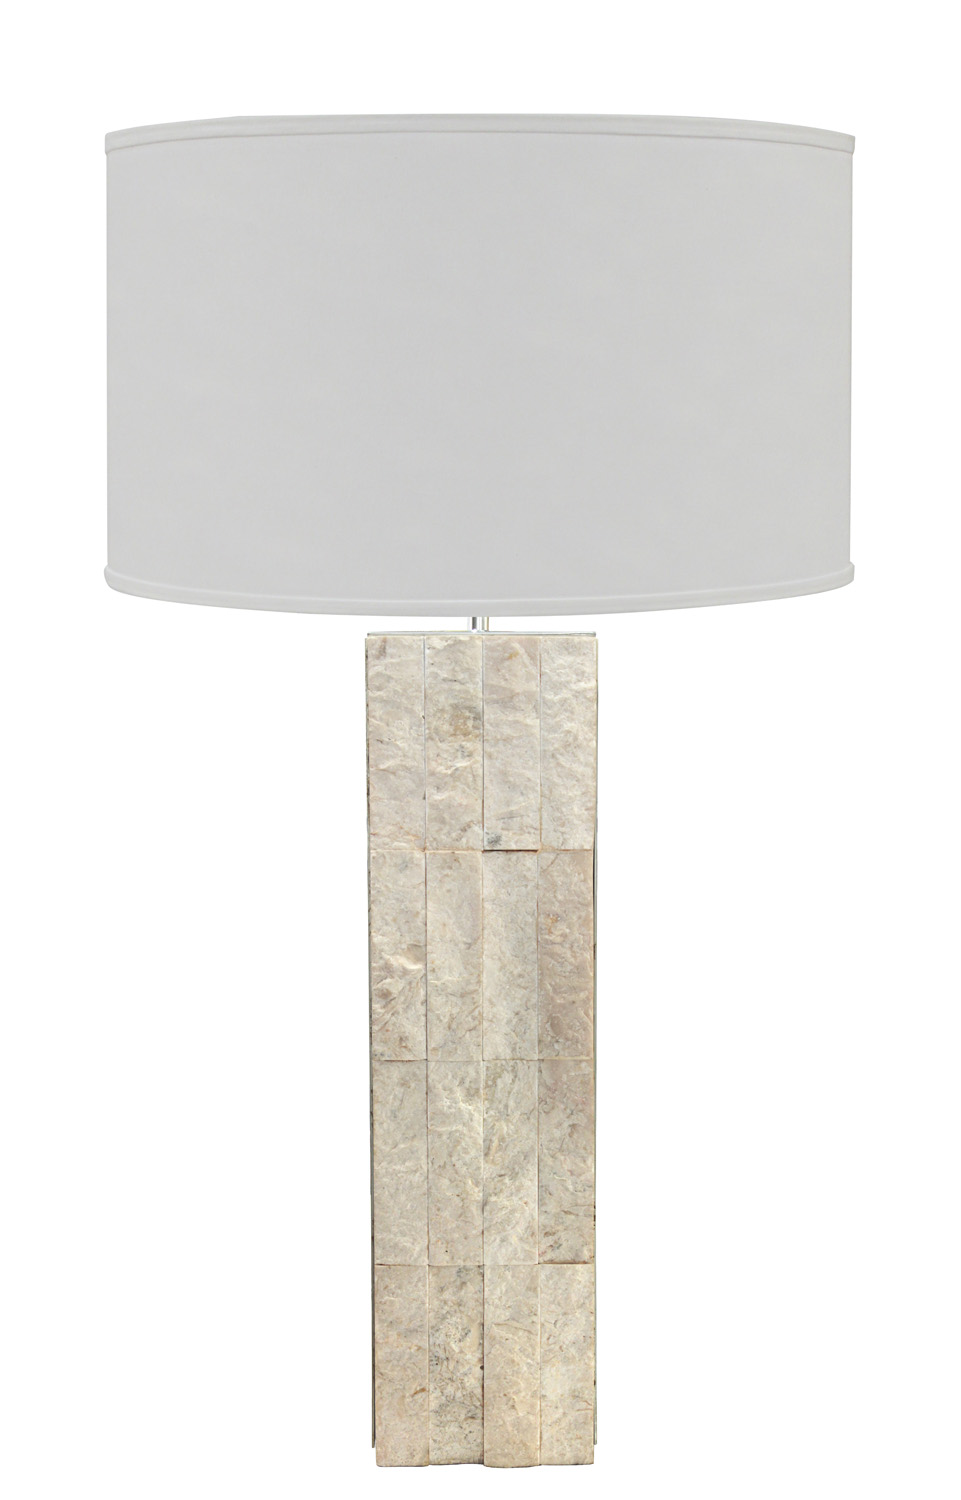 70's 45 ivory flagstone+brushed s tablelamps336 detail1 hires.jpg